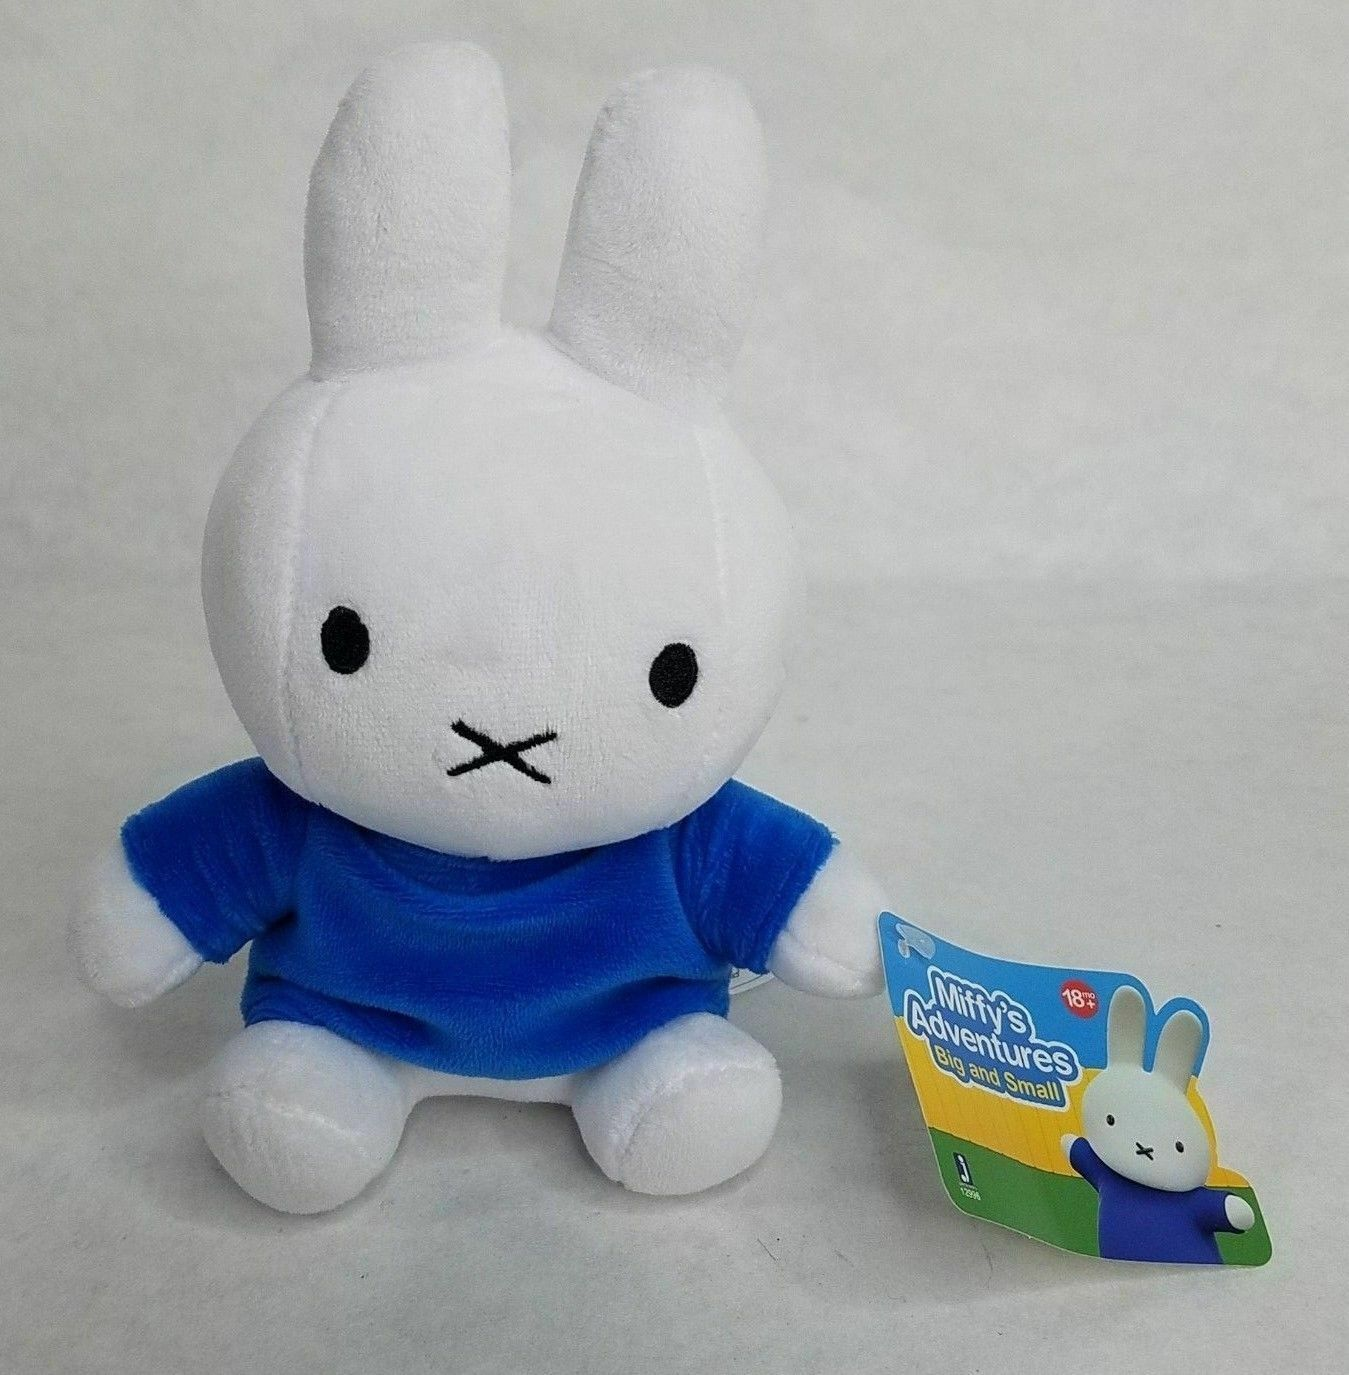 "Primary image for Miffy's Adventures Big and Small Miffy Plush 6"" Brand New nwt rare white rabbit"